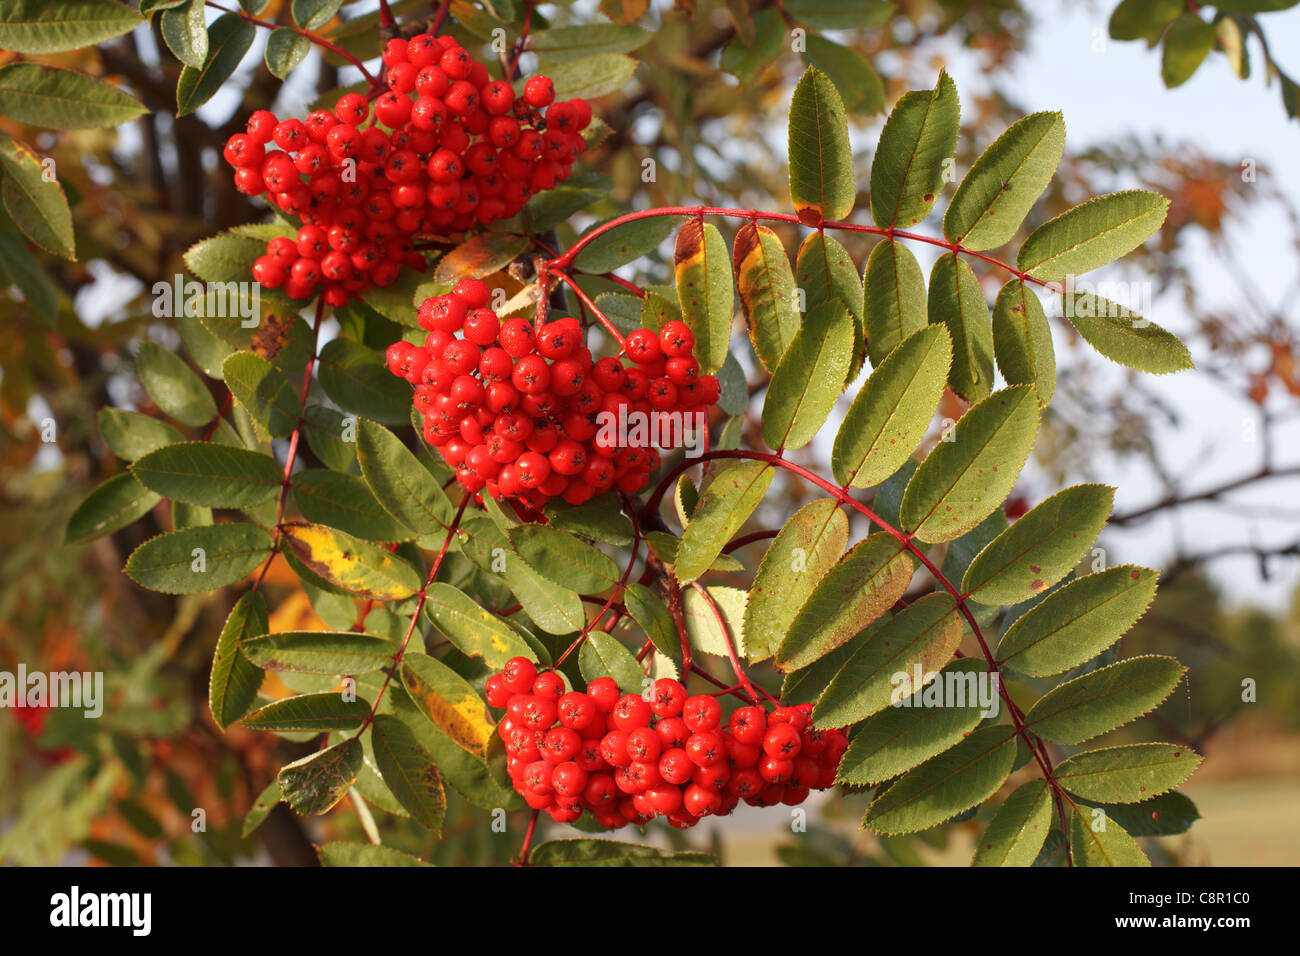 Autumn view of red berries on mountain ash tree in northern Minnesota, Sorbus americana. - Stock Image